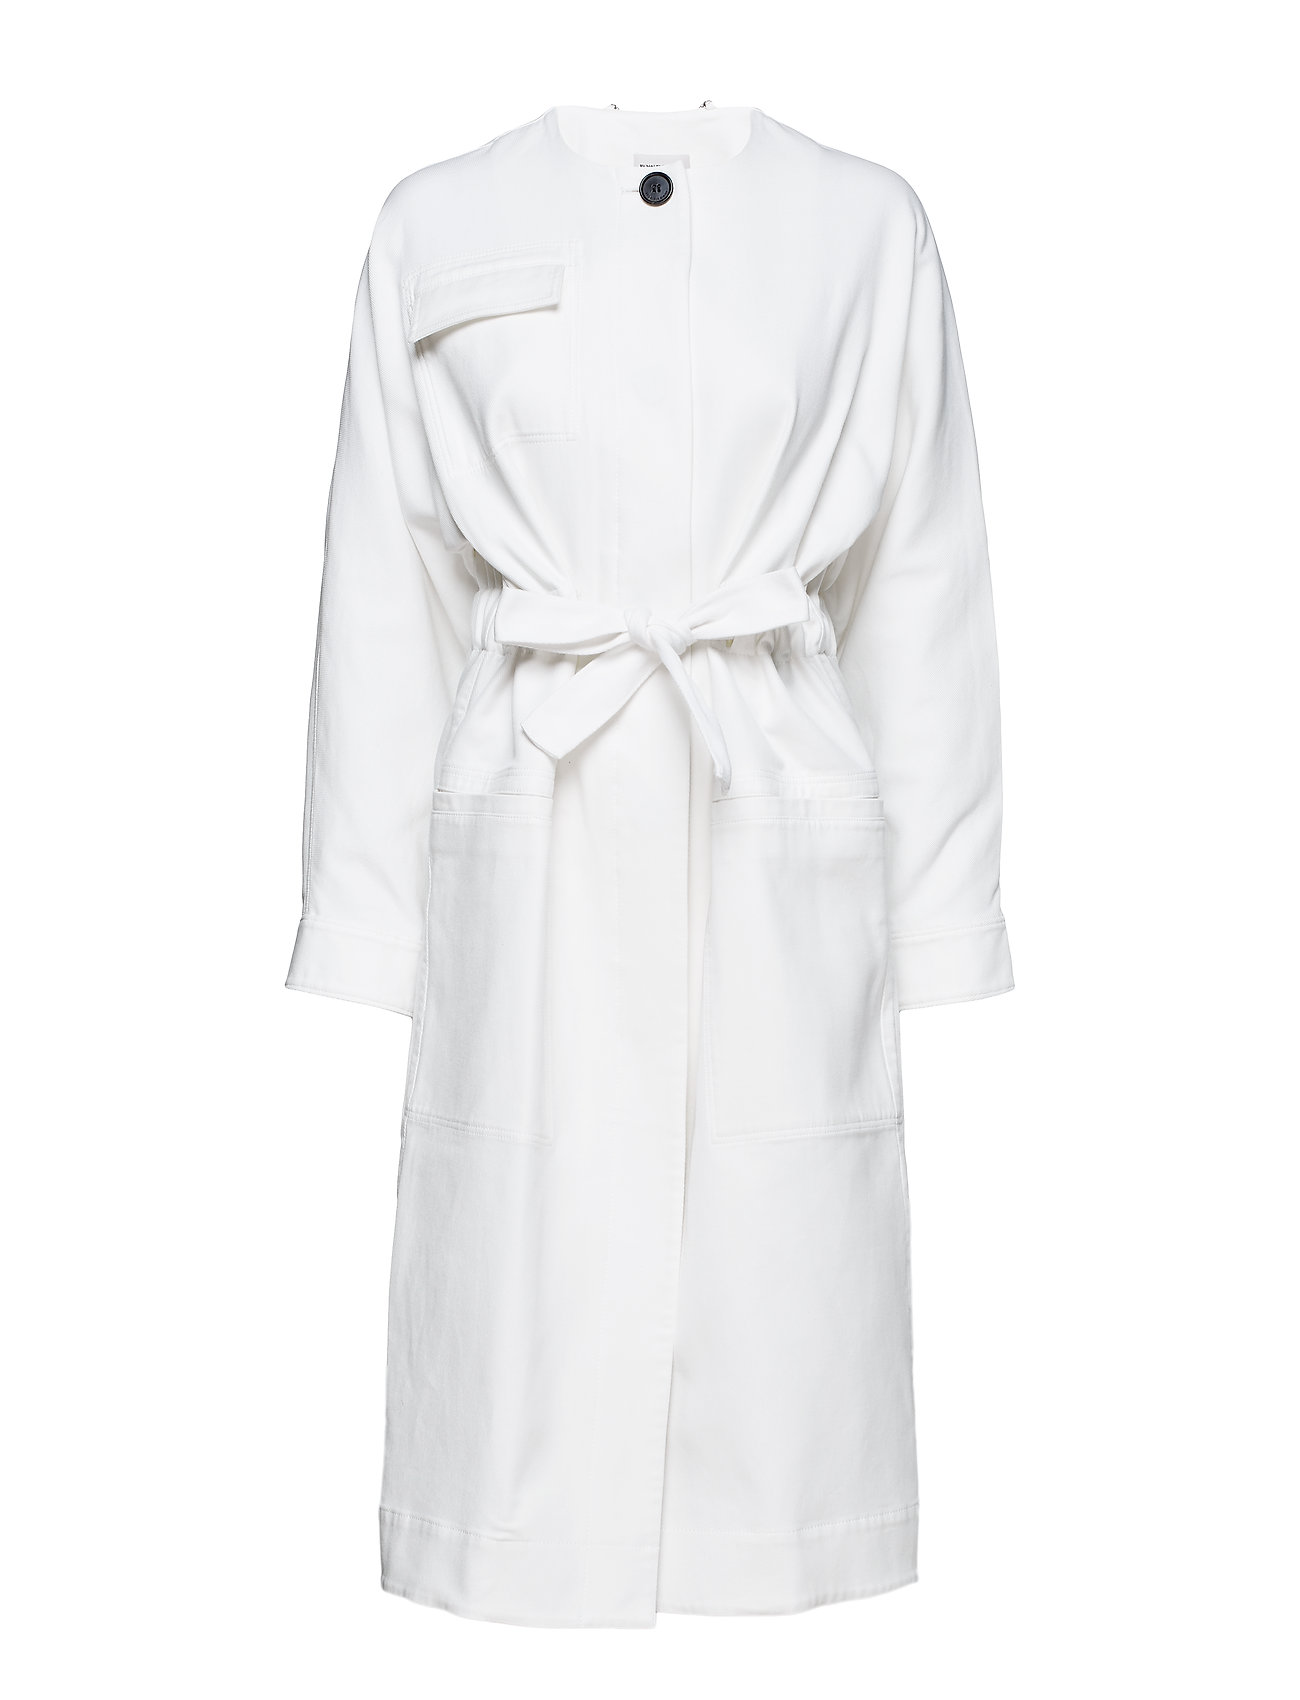 By Malene Birger OUT1003S91 - SOFT WHITE